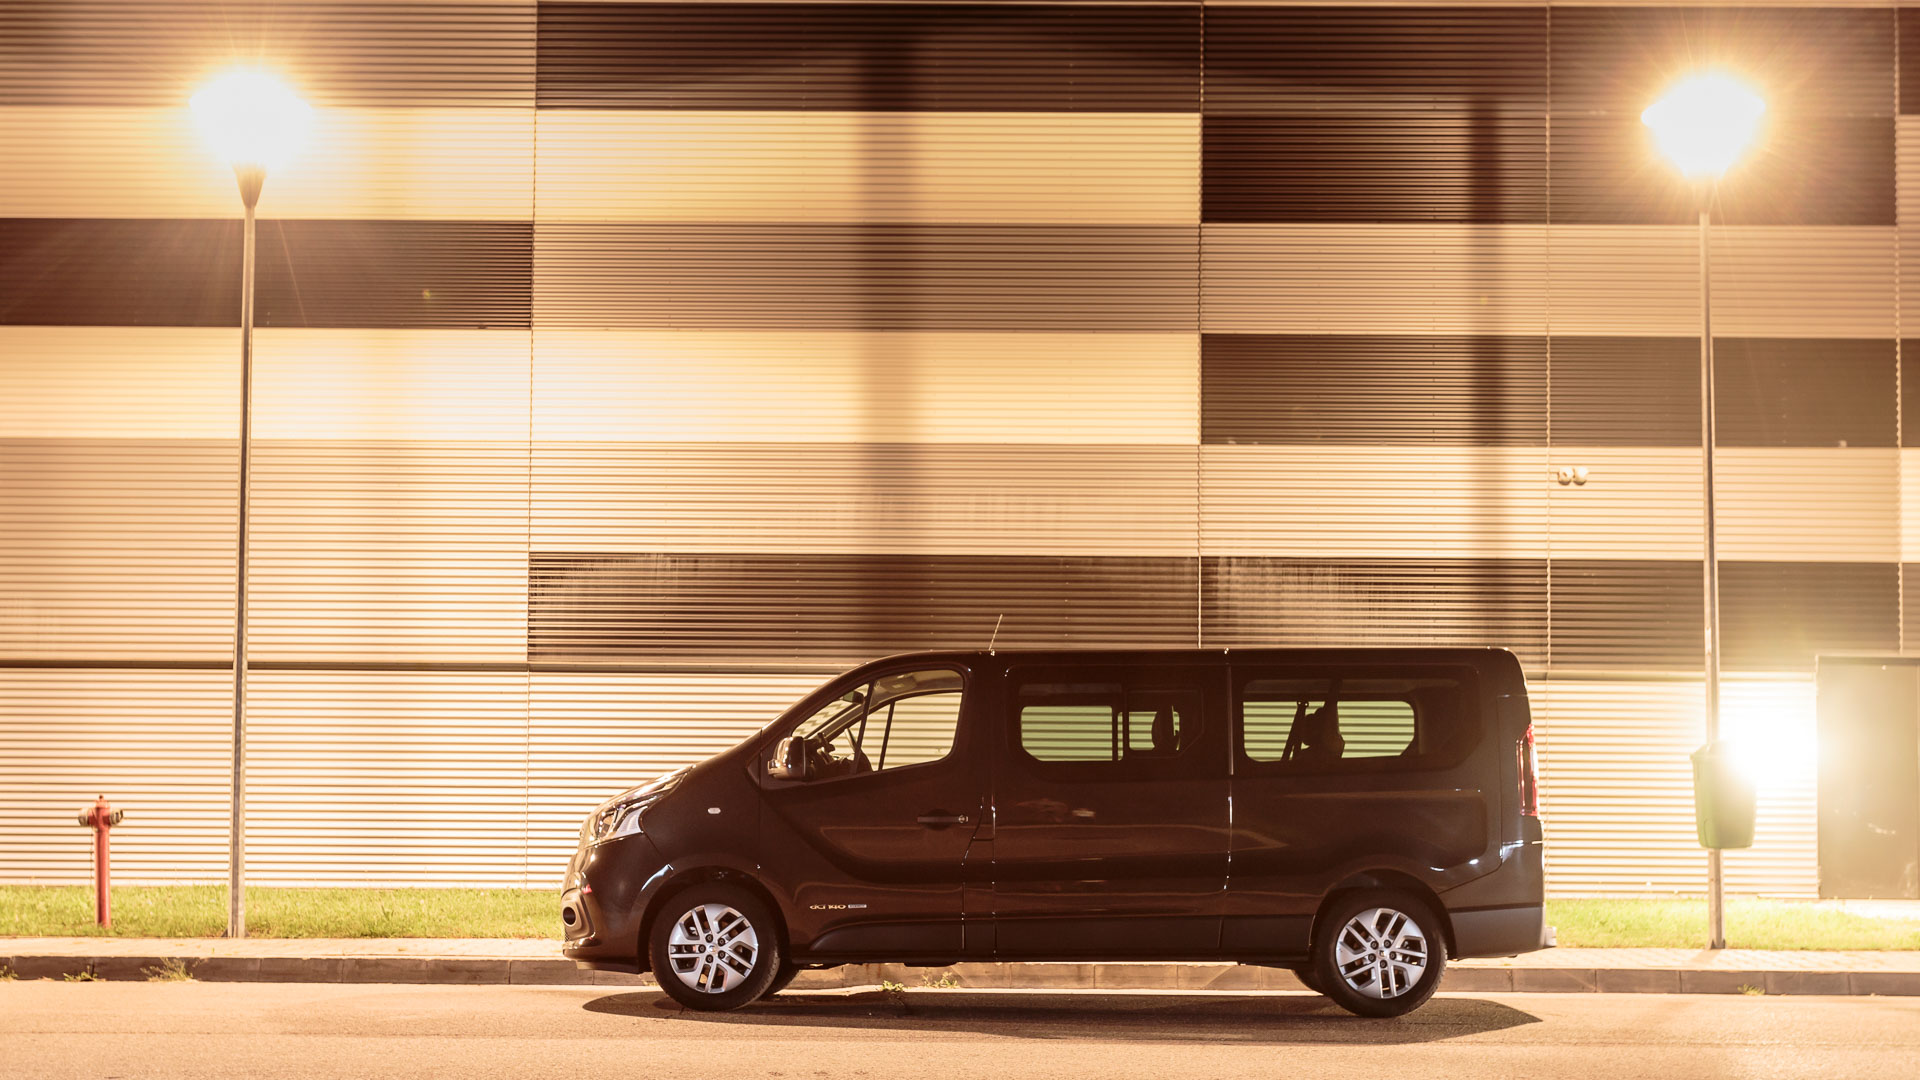 Drive test Renault Trafic Grand Passanger 2015 1.6 dCI TwinTurbo 140 CP